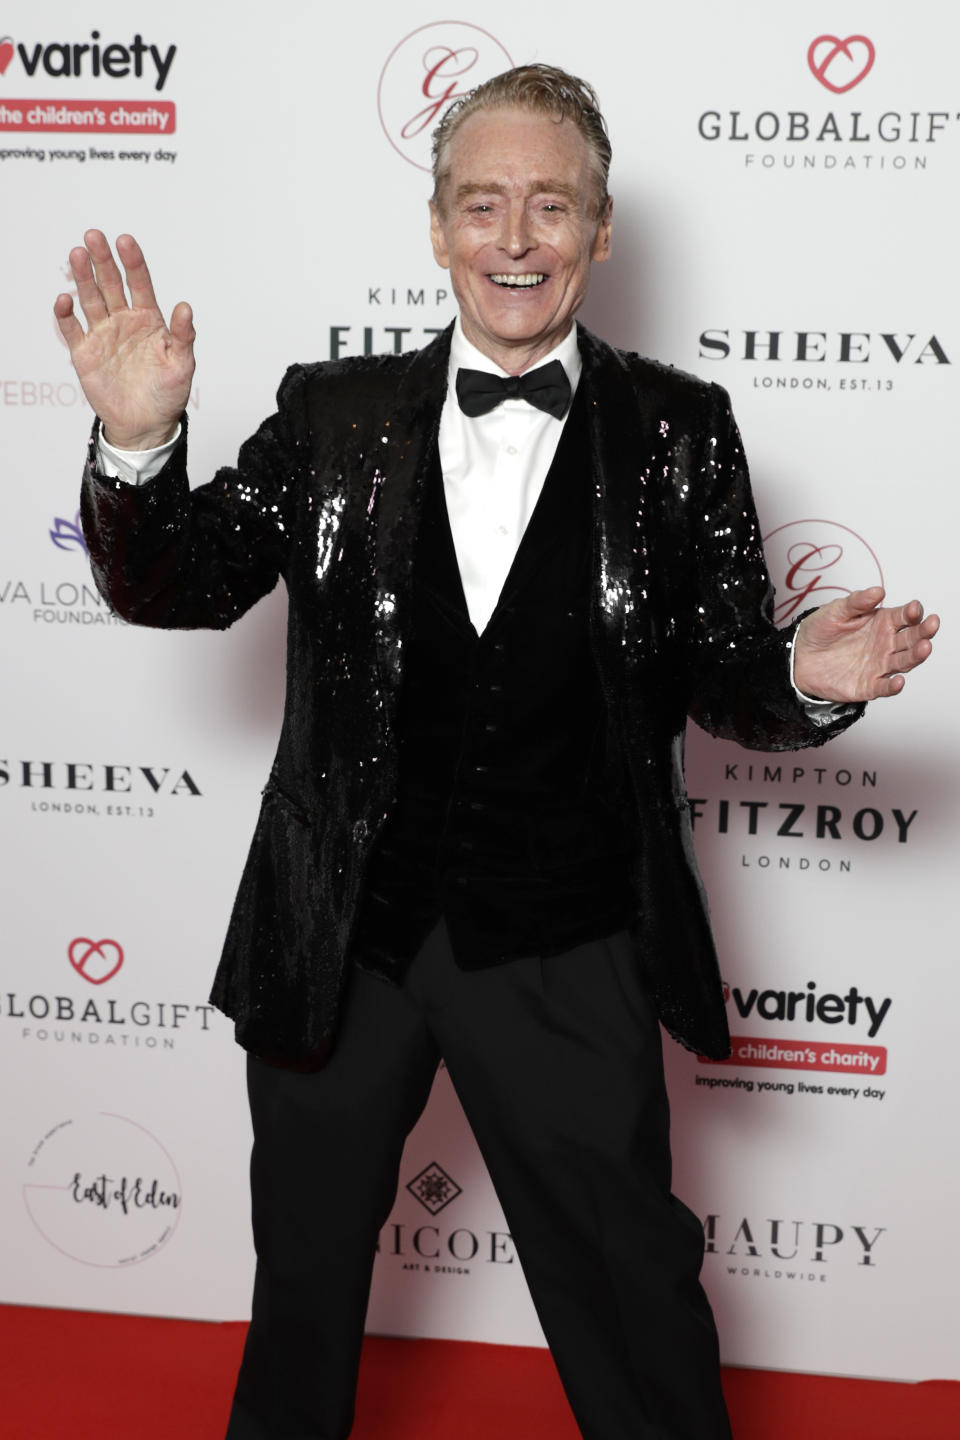 LONDON, ENGLAND - OCTOBER 17: Brian Travers attends the annual Global Gift Gala London at Kimpton Fitzroy Hotel on October 17, 2019 in London, England. (Photo by John Phillips/Getty Images)